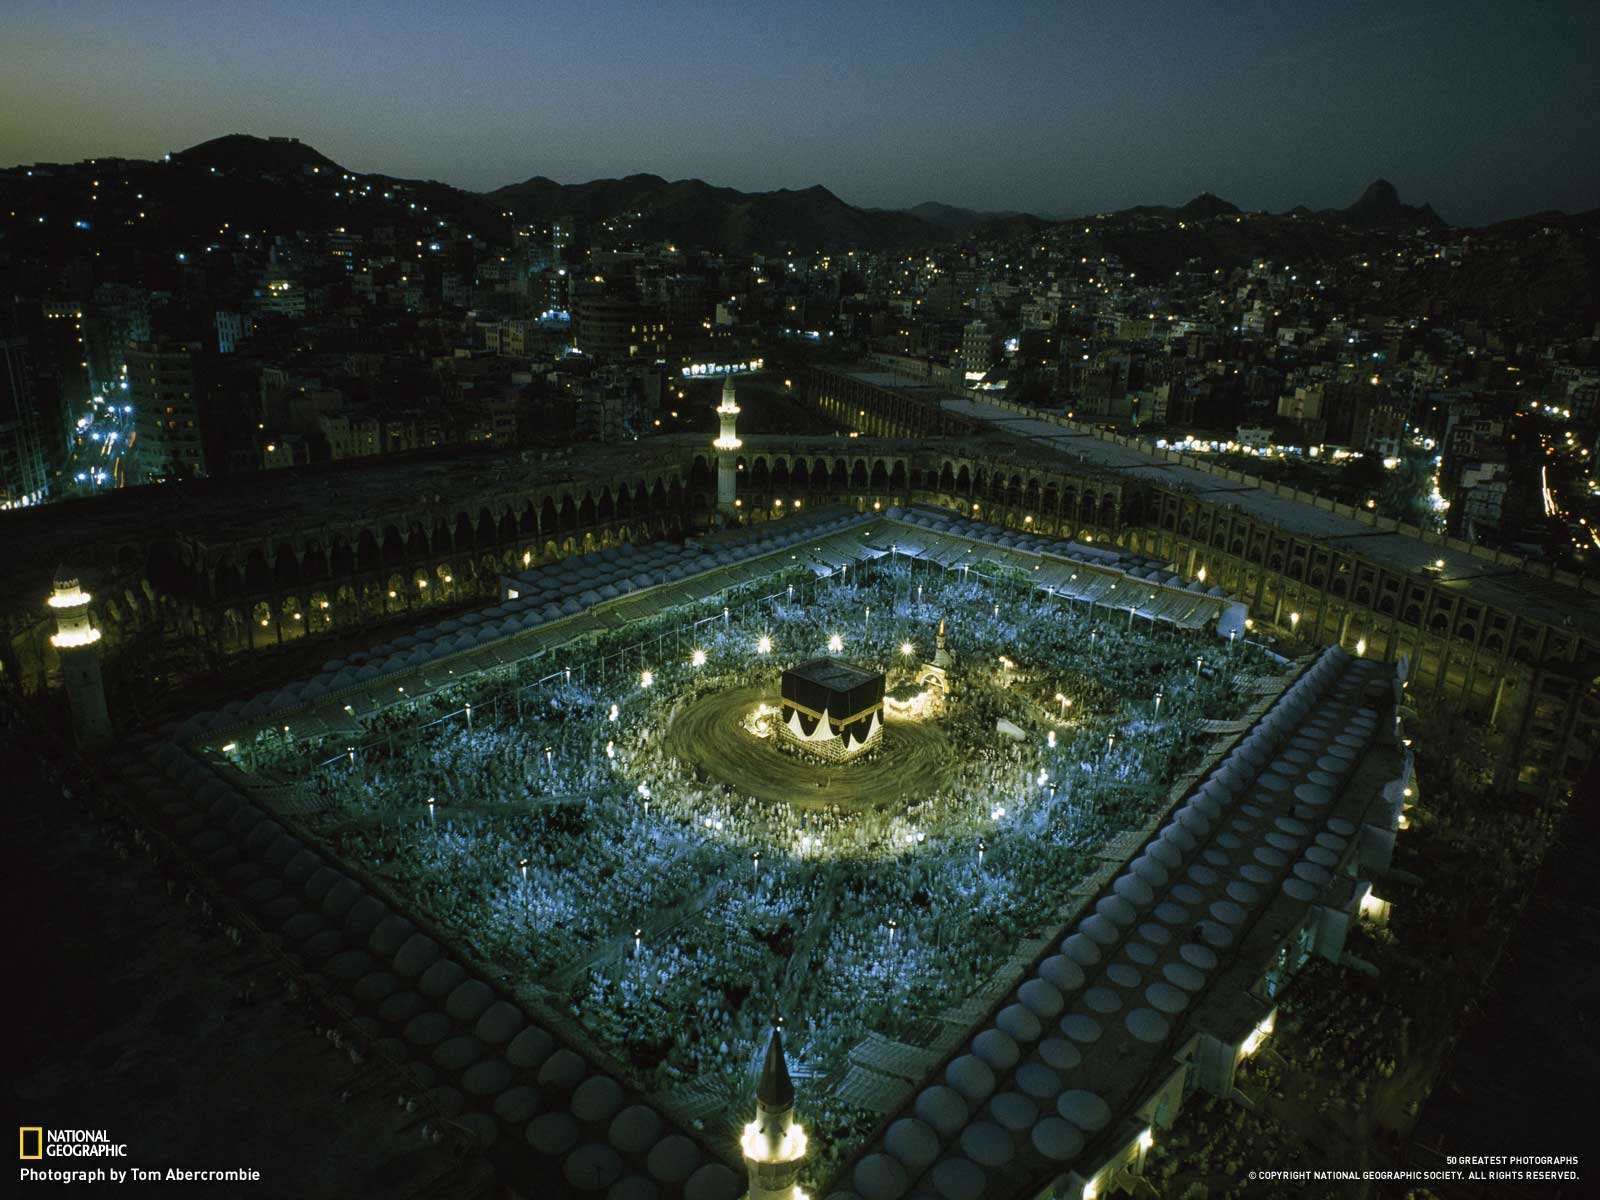 Mecca at Night during Haj, Saudi Arabia